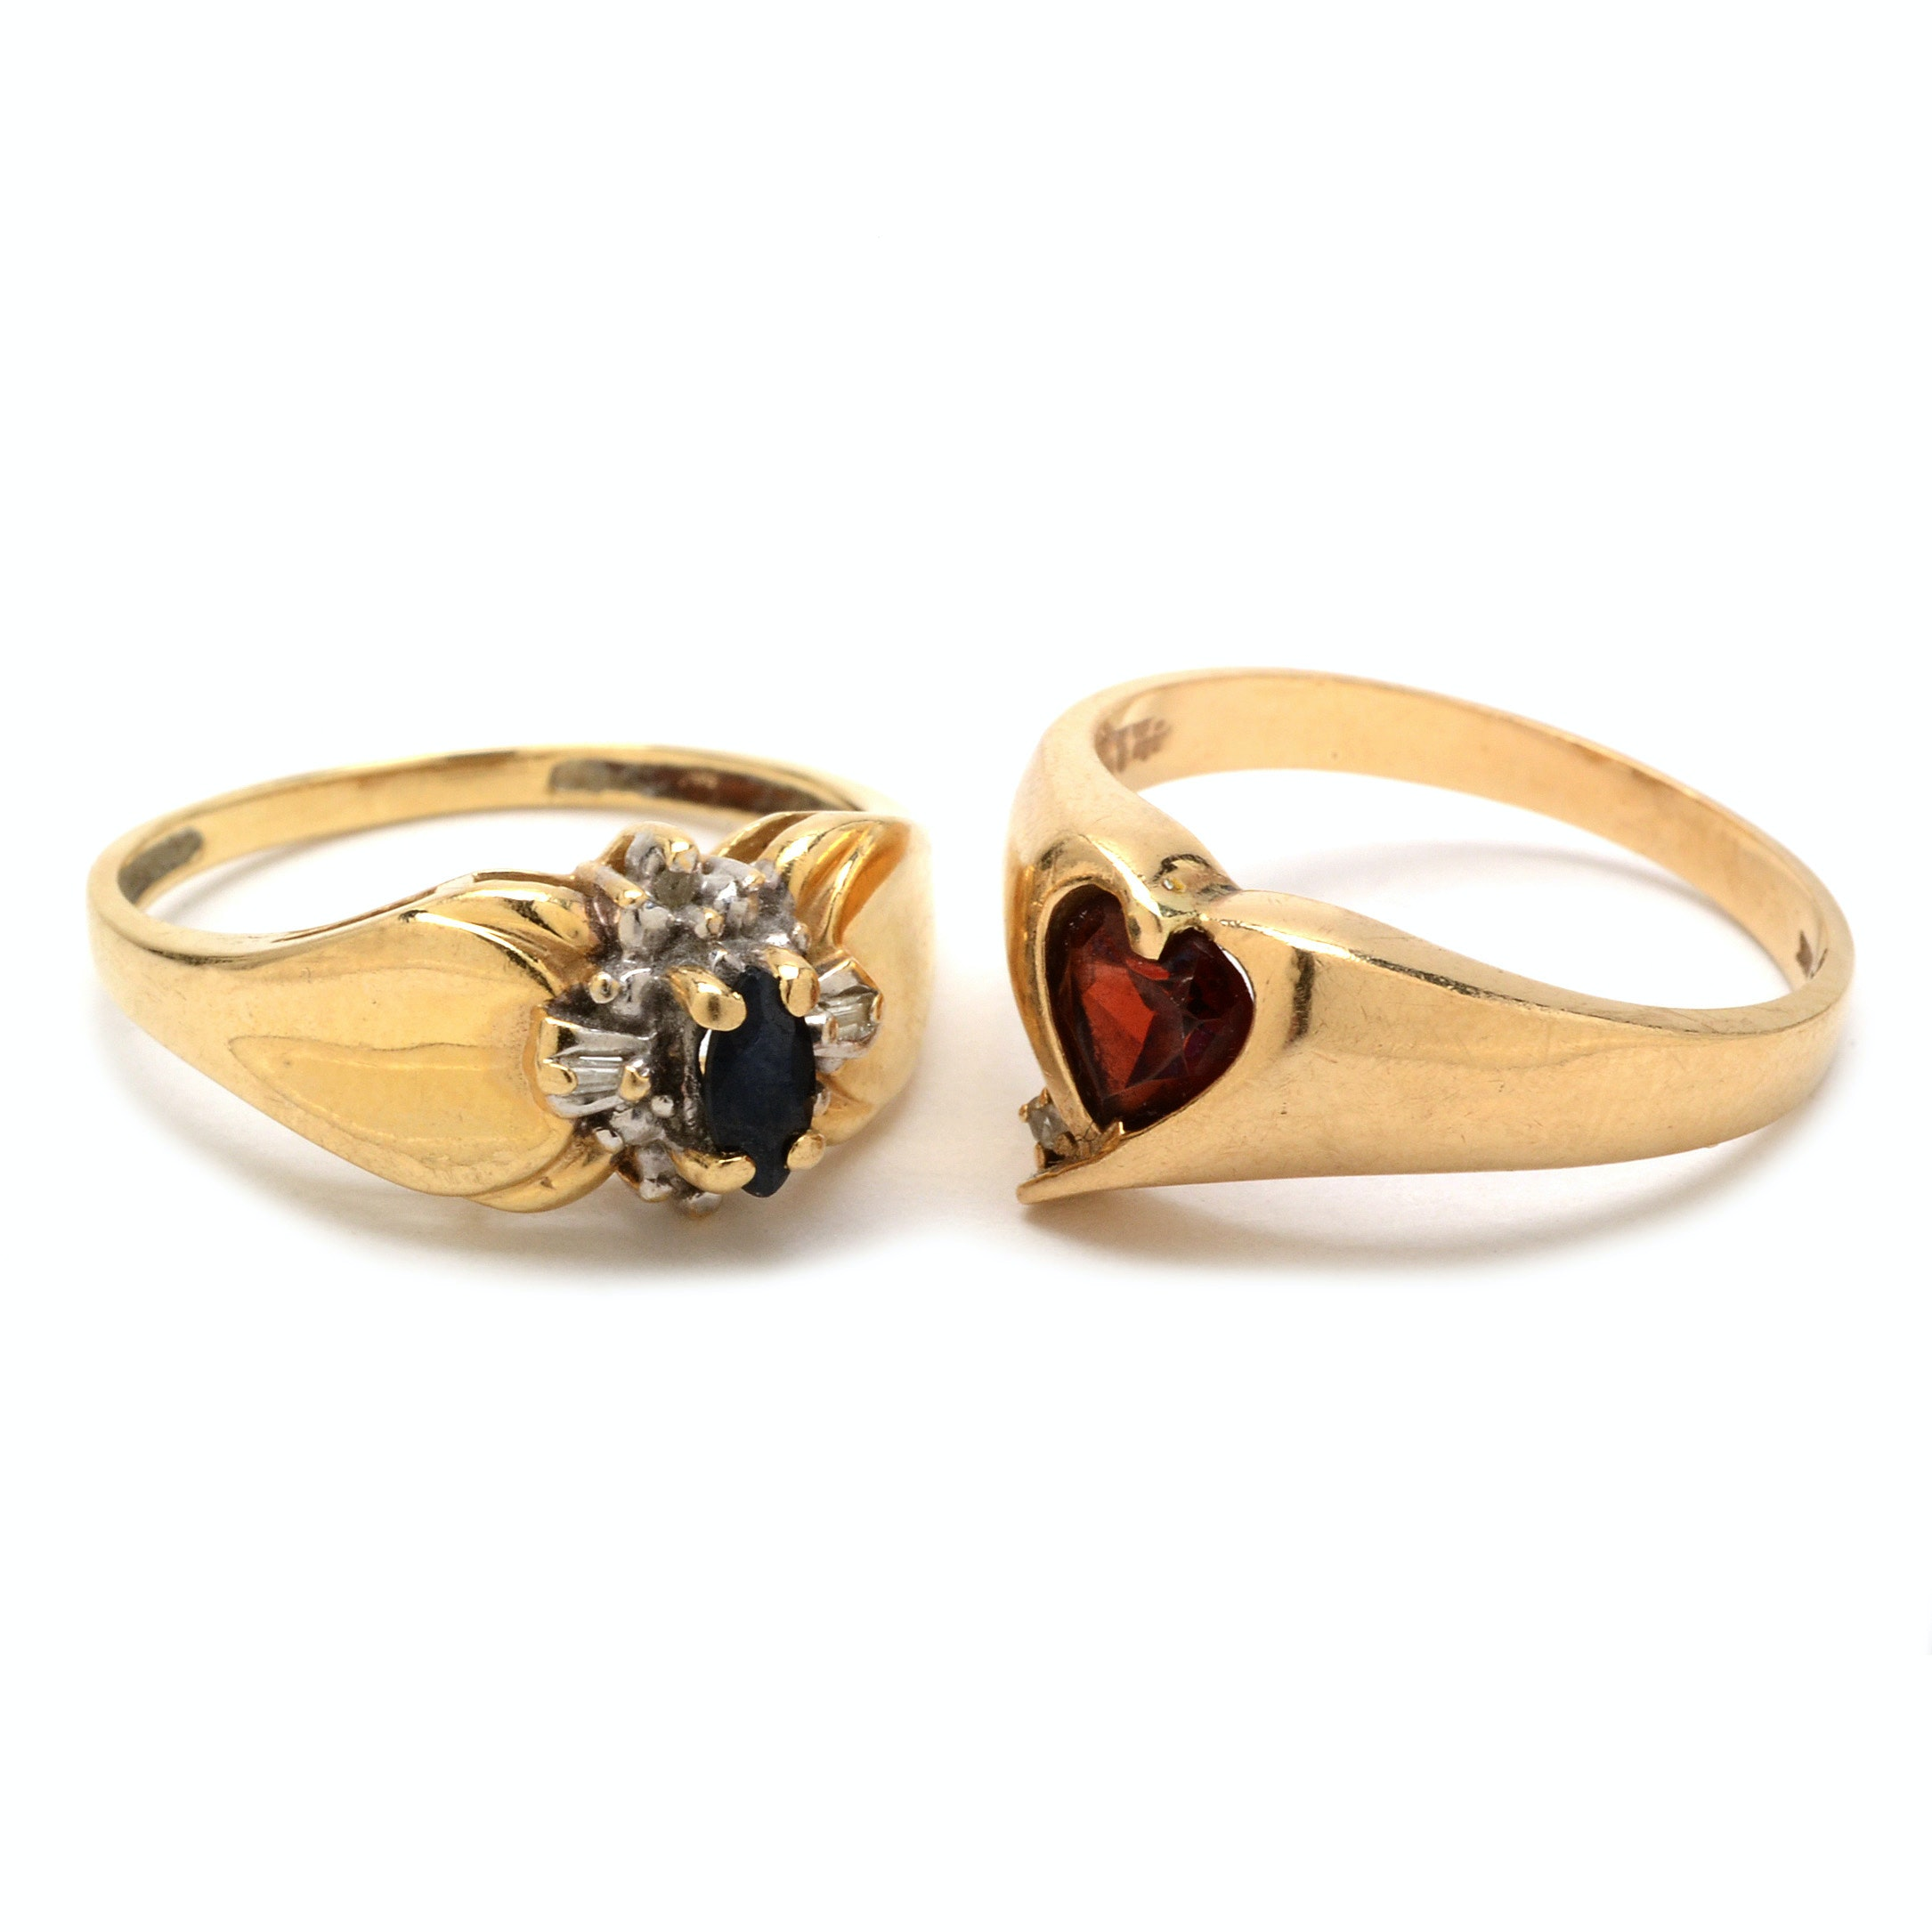 Two 10K Gold Rings with Diamonds and Gemstones